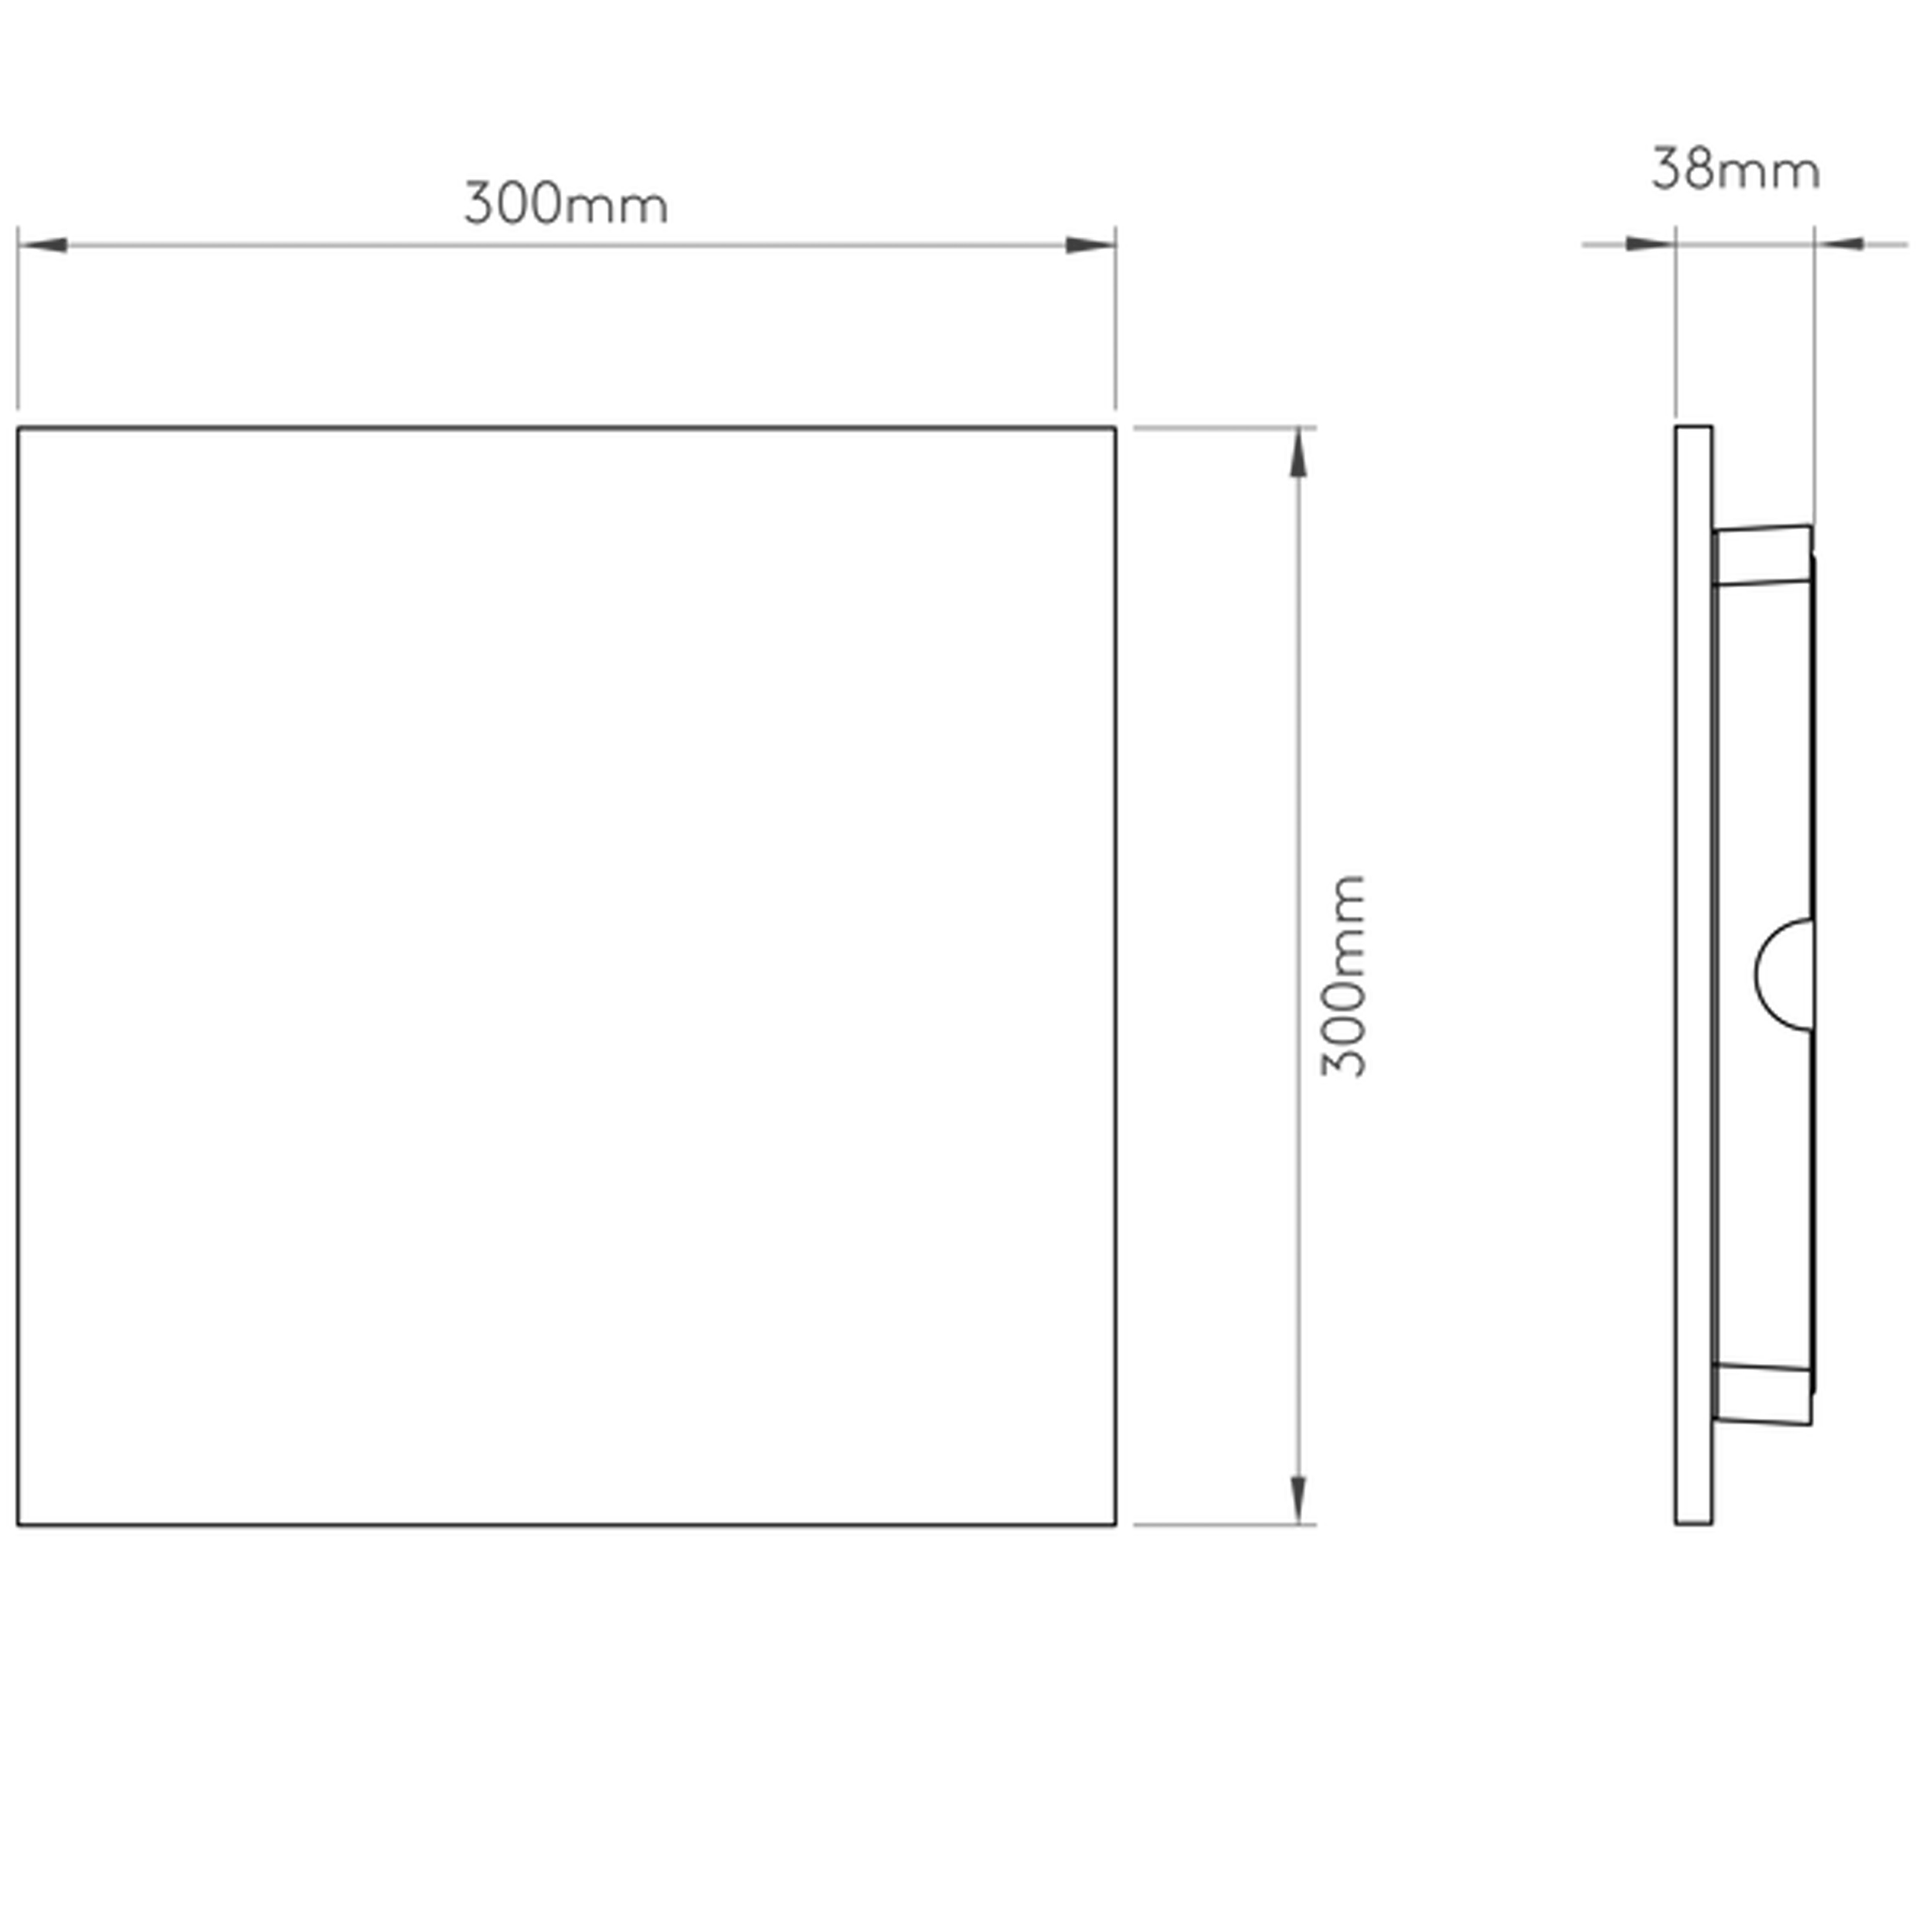 Astro Eclipse Square 300 Wall Light Line Drawing